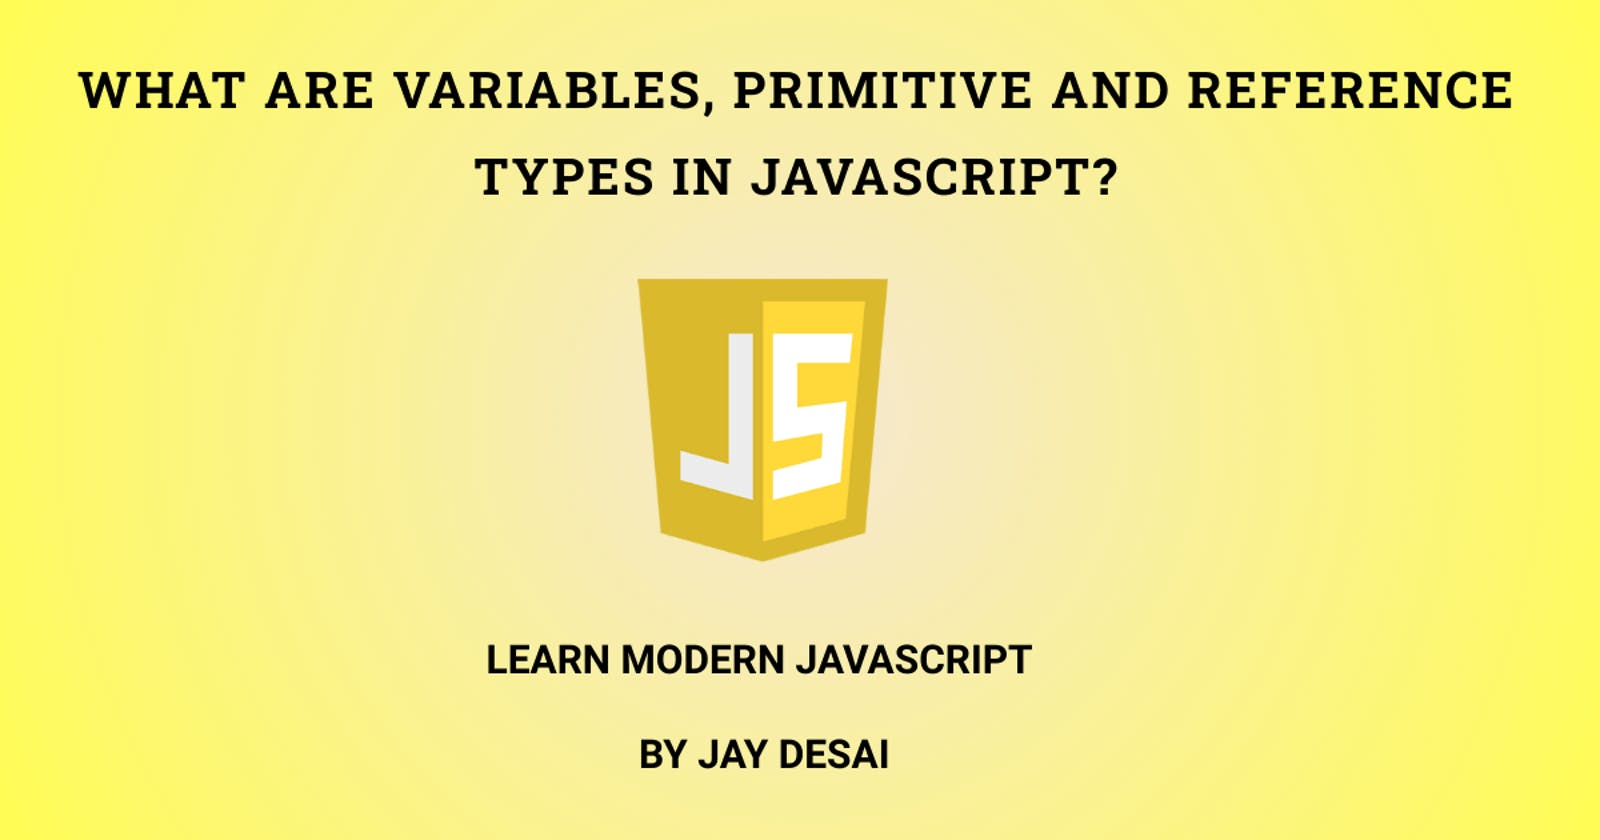 What are Variables, Primitive and Reference Types in JavaScript?